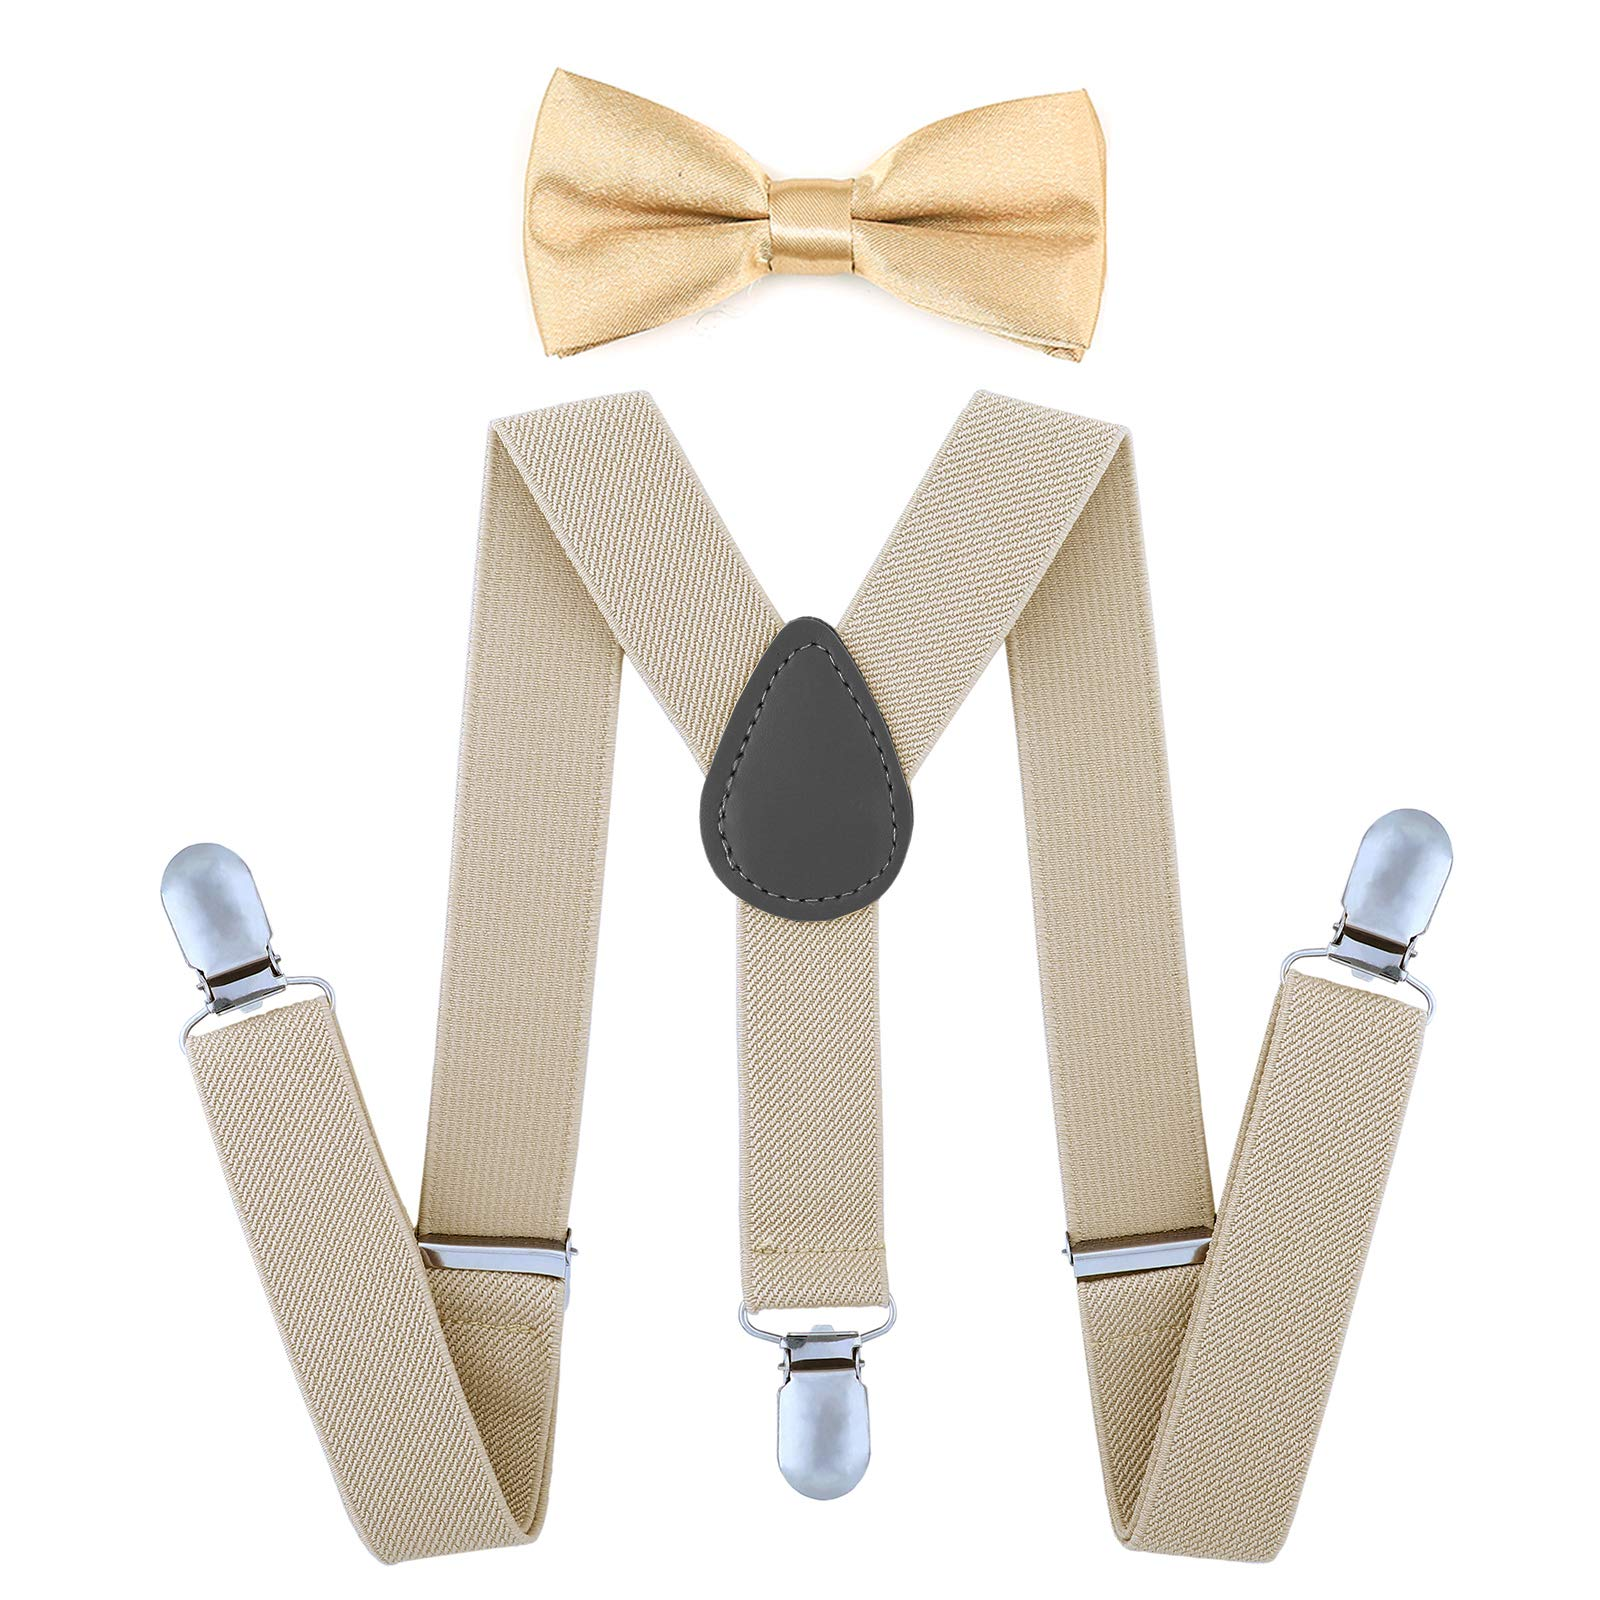 AWAYTR Child Kids Suspenders Bowtie Set - Adjustable Suspender Set for Boys and Girls (Khaki, 30Inches (6 Years to 5 Feet Tall) by AWAYTR